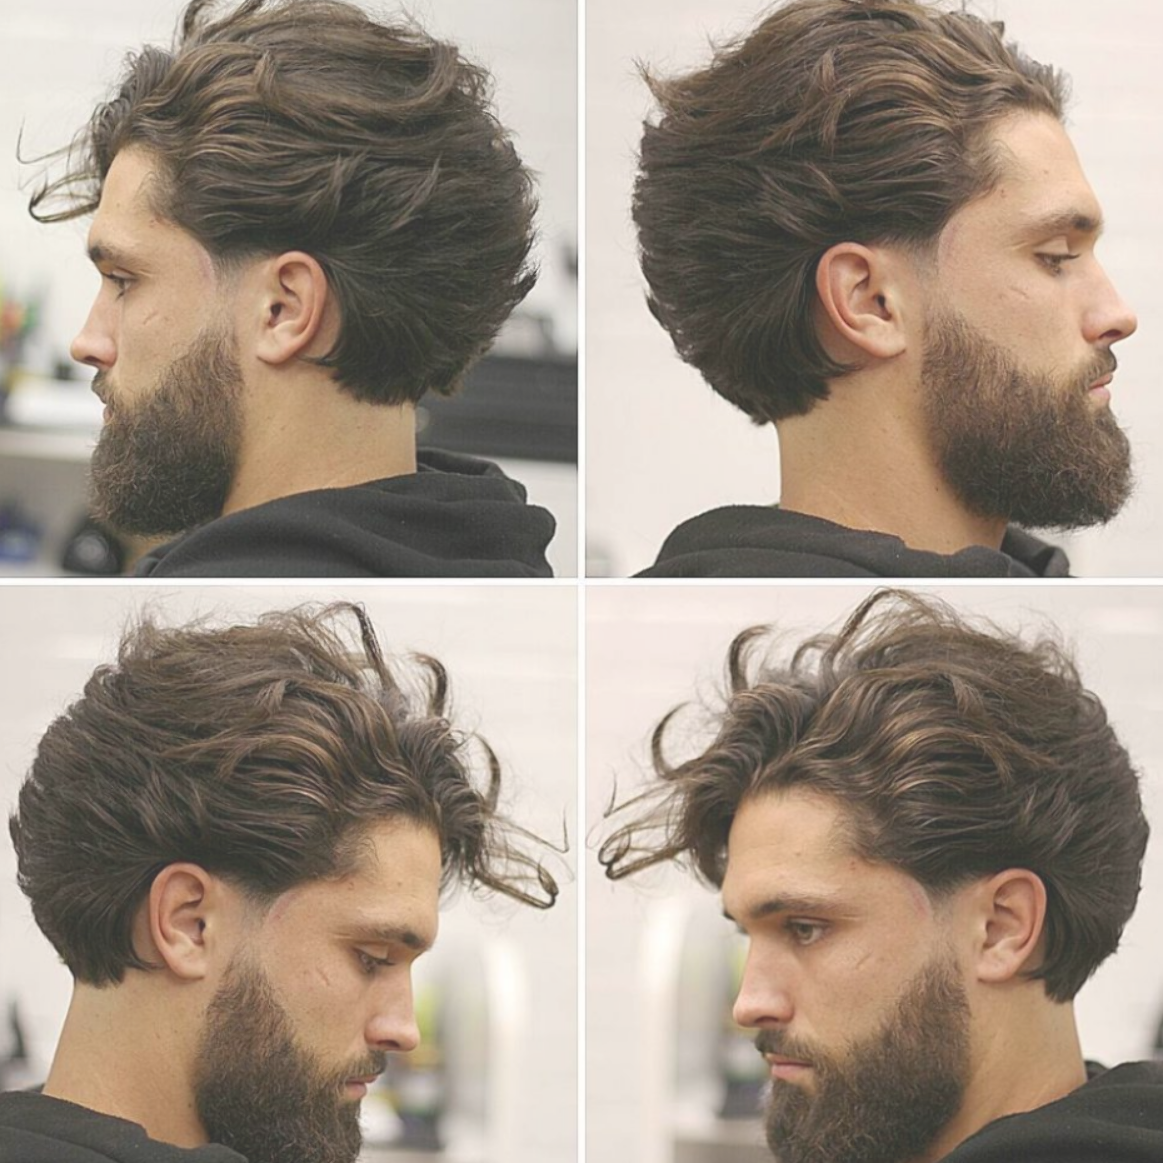 Top Men S Hair Style 2020 58 The Best Men S Haircuts Of 2020 Long Hairstyle For Men Beard Men S Long Hair Styles Men Medium Hair Styles Hairstyles Haircuts